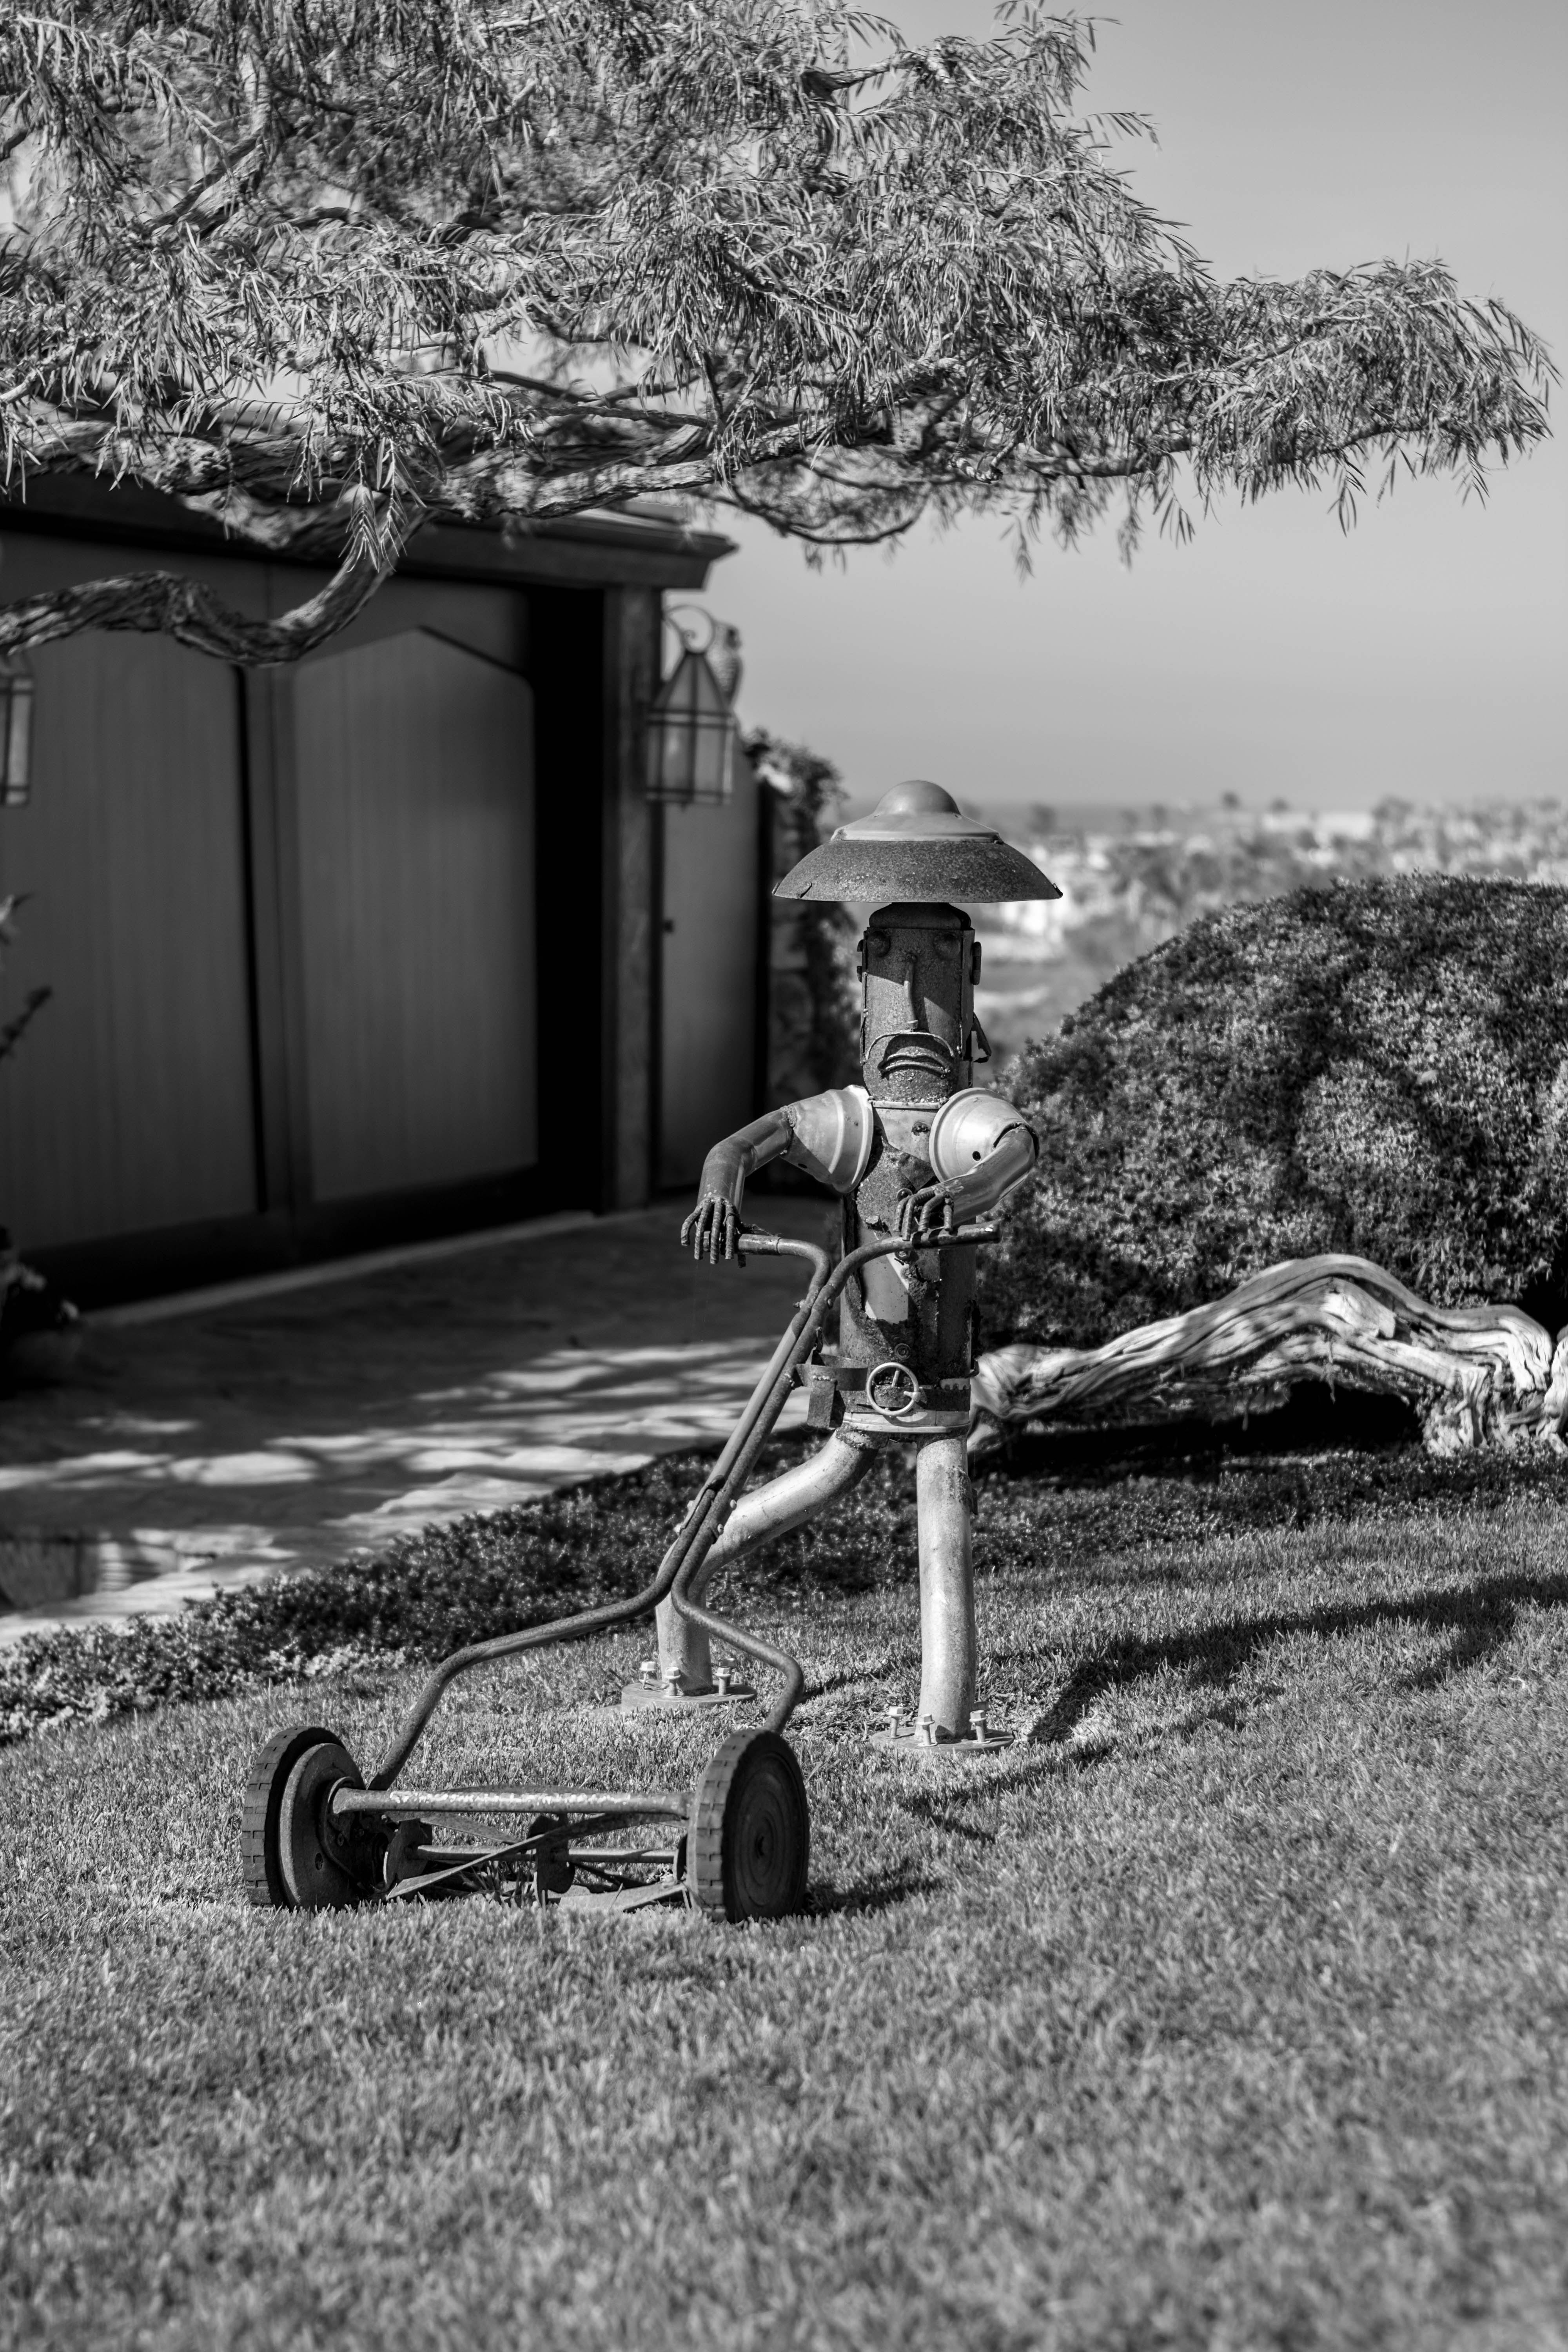 grayscale photography of robot man holding reel mower